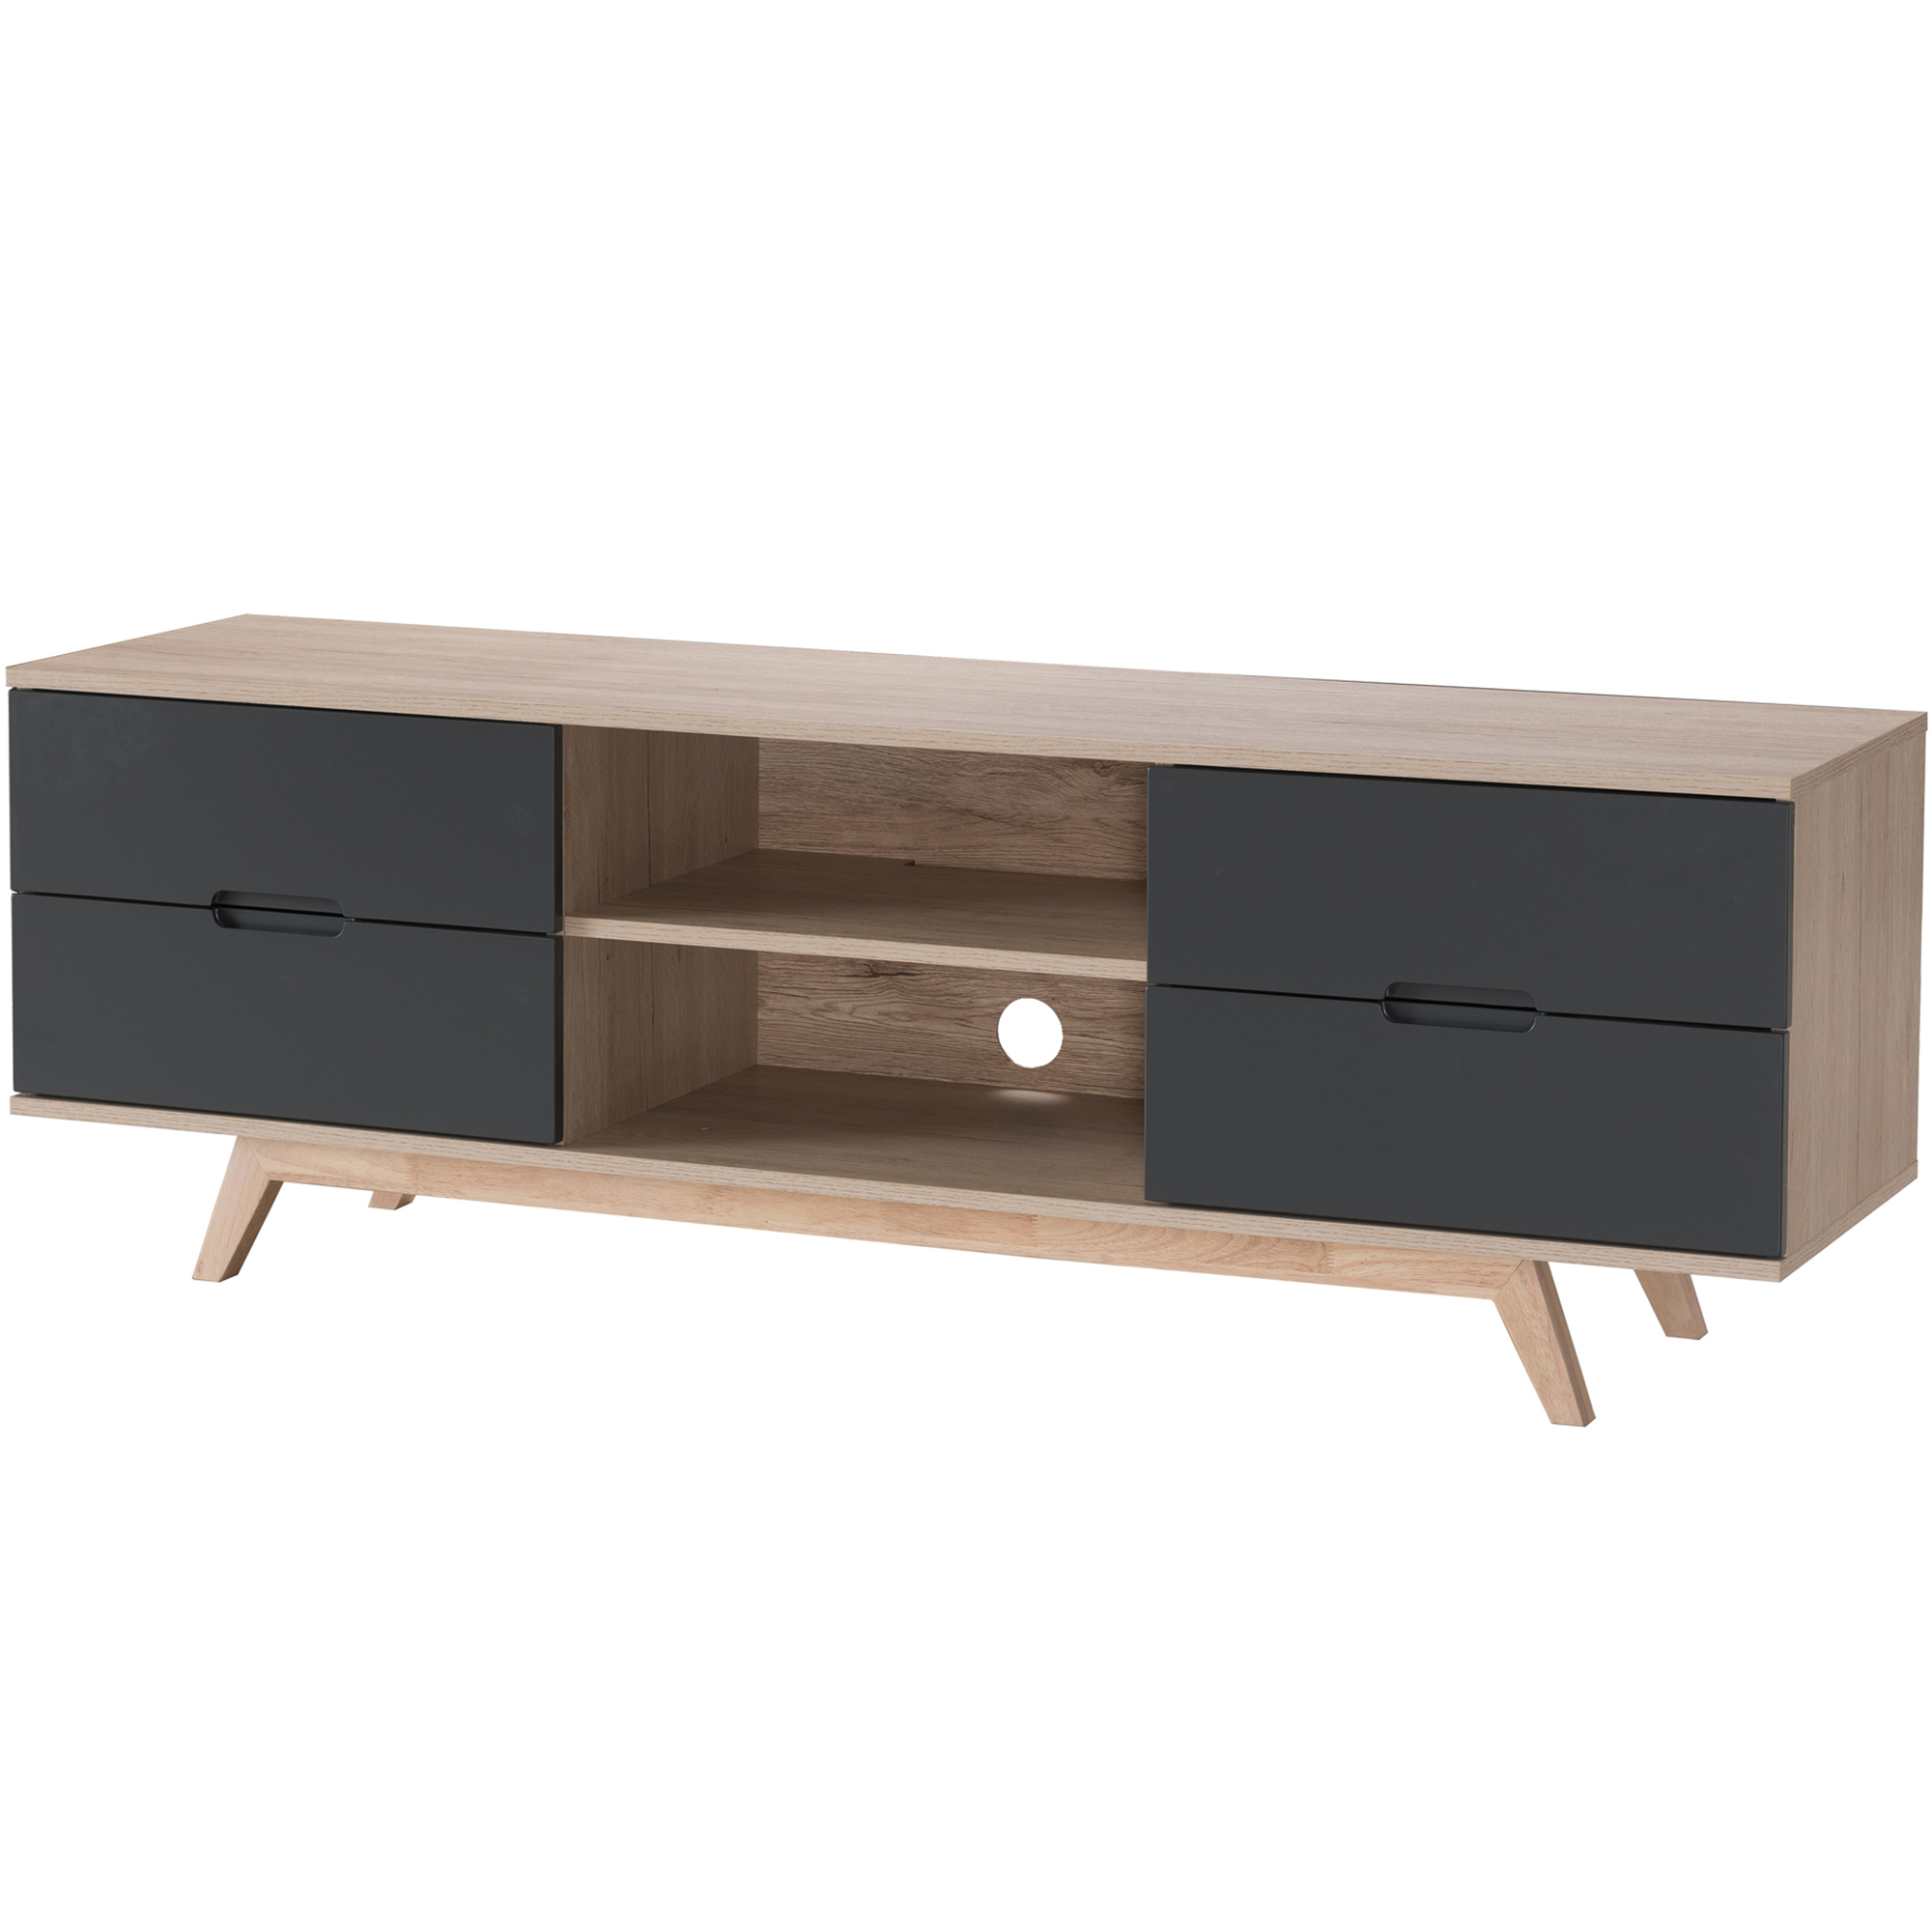 150Cm Tv Units With Regard To Well Known New 150Cm Nova European Style Entertainment Unit – Kd Furniture,tv (Gallery 11 of 20)